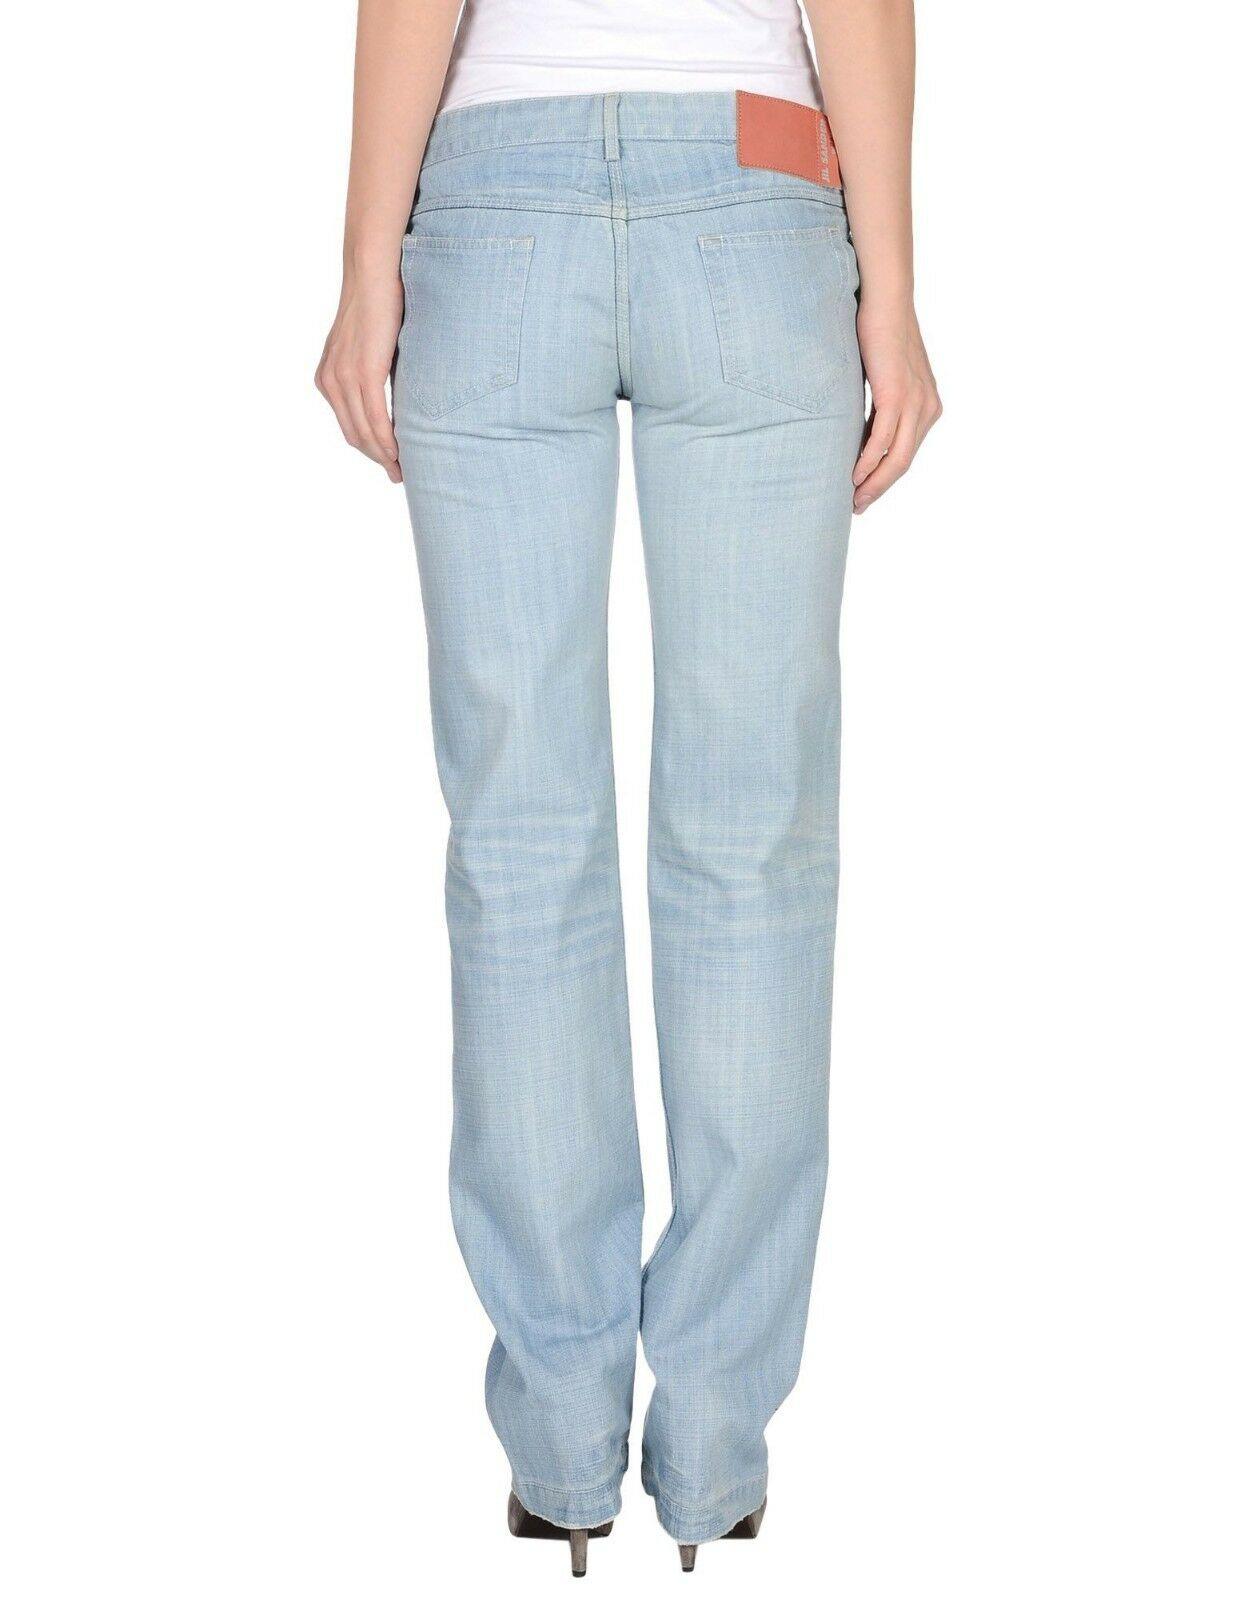 Jil Sander Limited Line Japanese Made Light bluee Women's Jeans - W34 L33